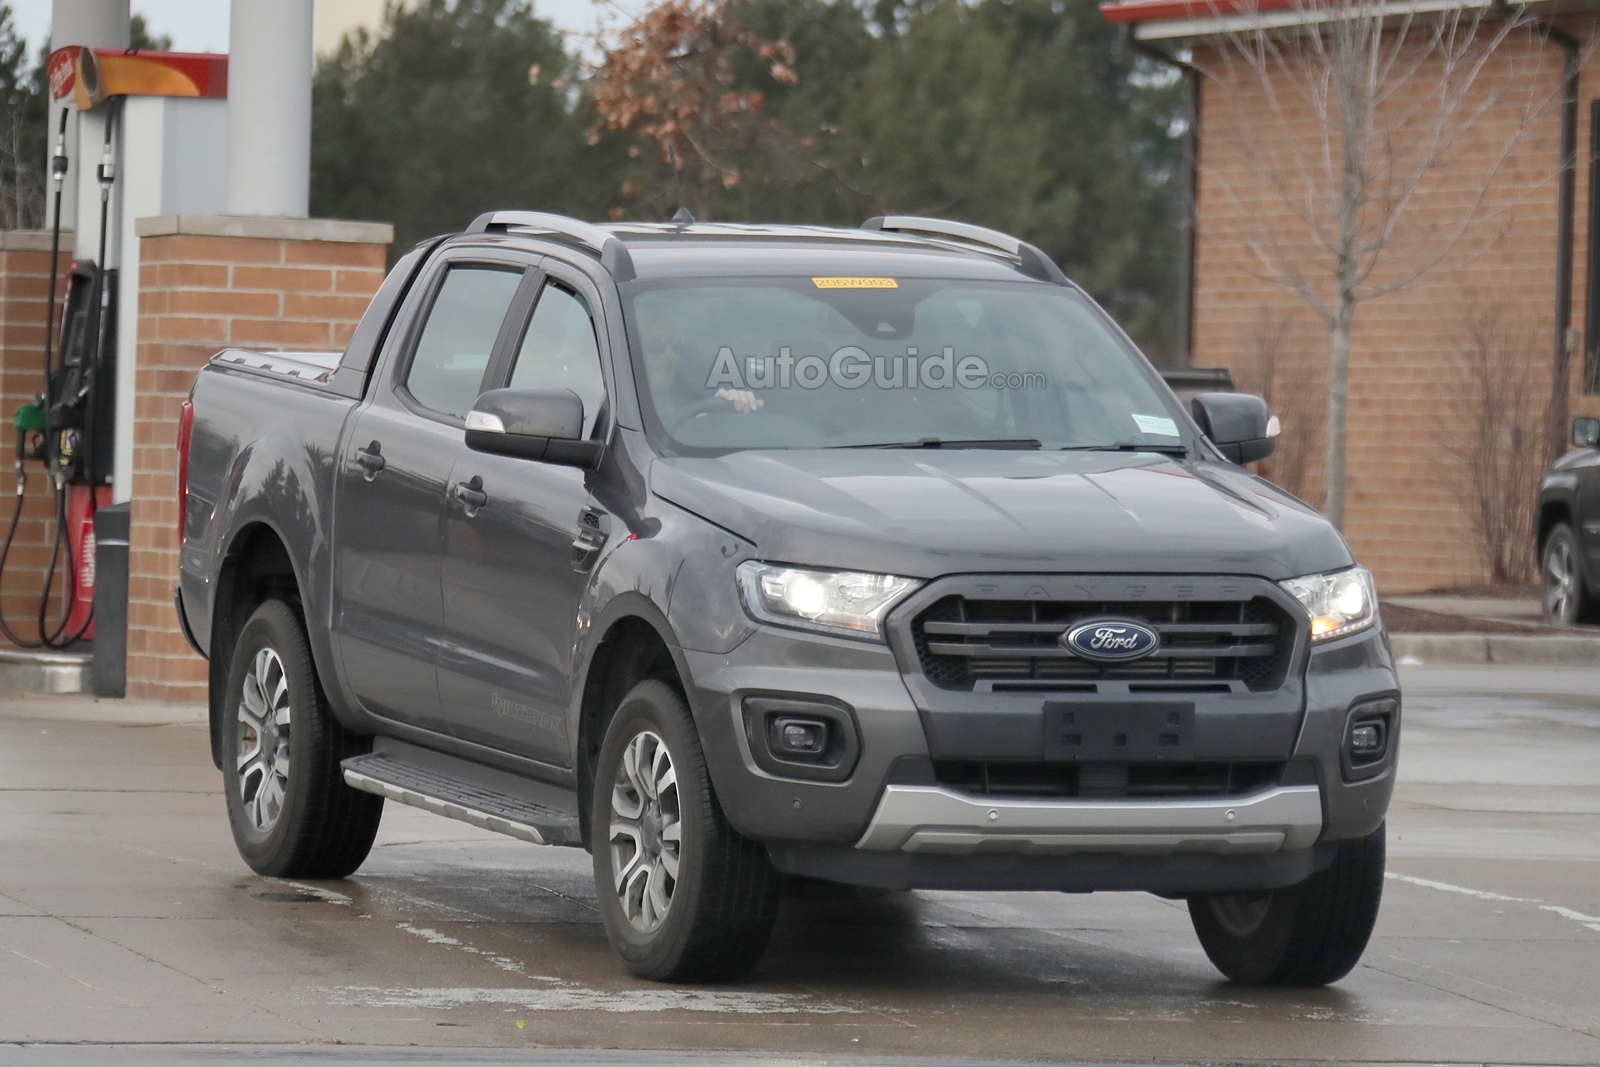 Best Used Diesel Truck >> 2019 Ford Ranger Wildtrak Spied Inside and Out » AutoGuide ...